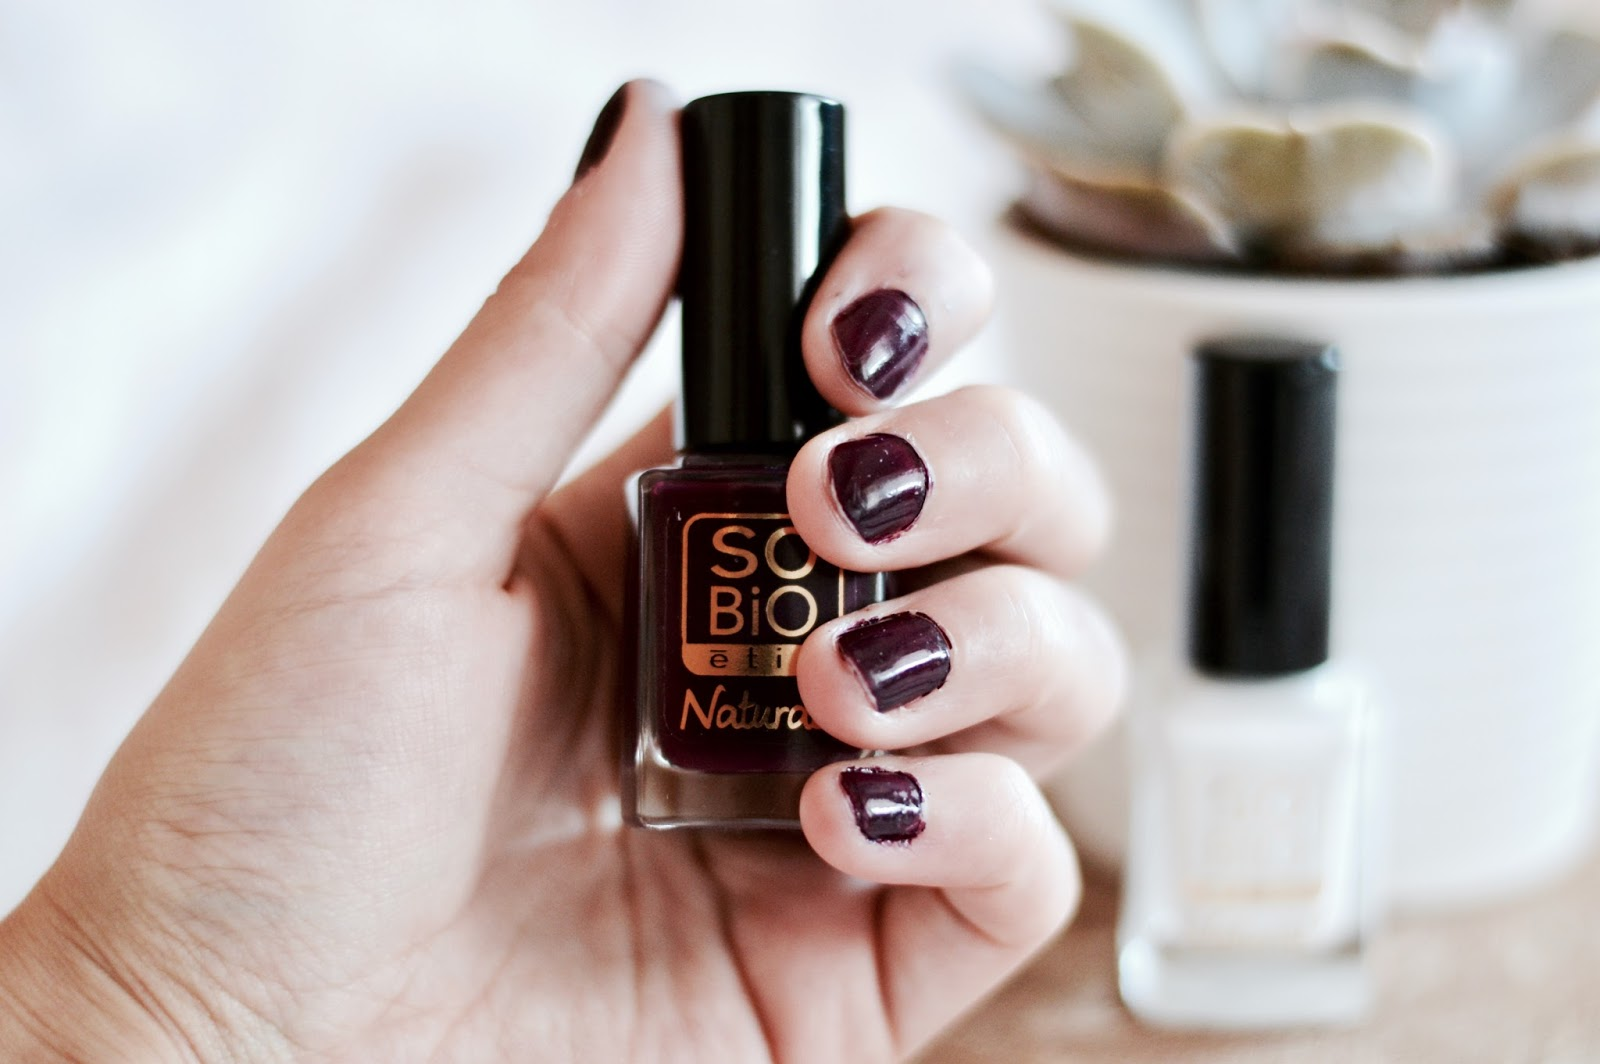 Vernis SO BiO' Etic prune noire et blanc french